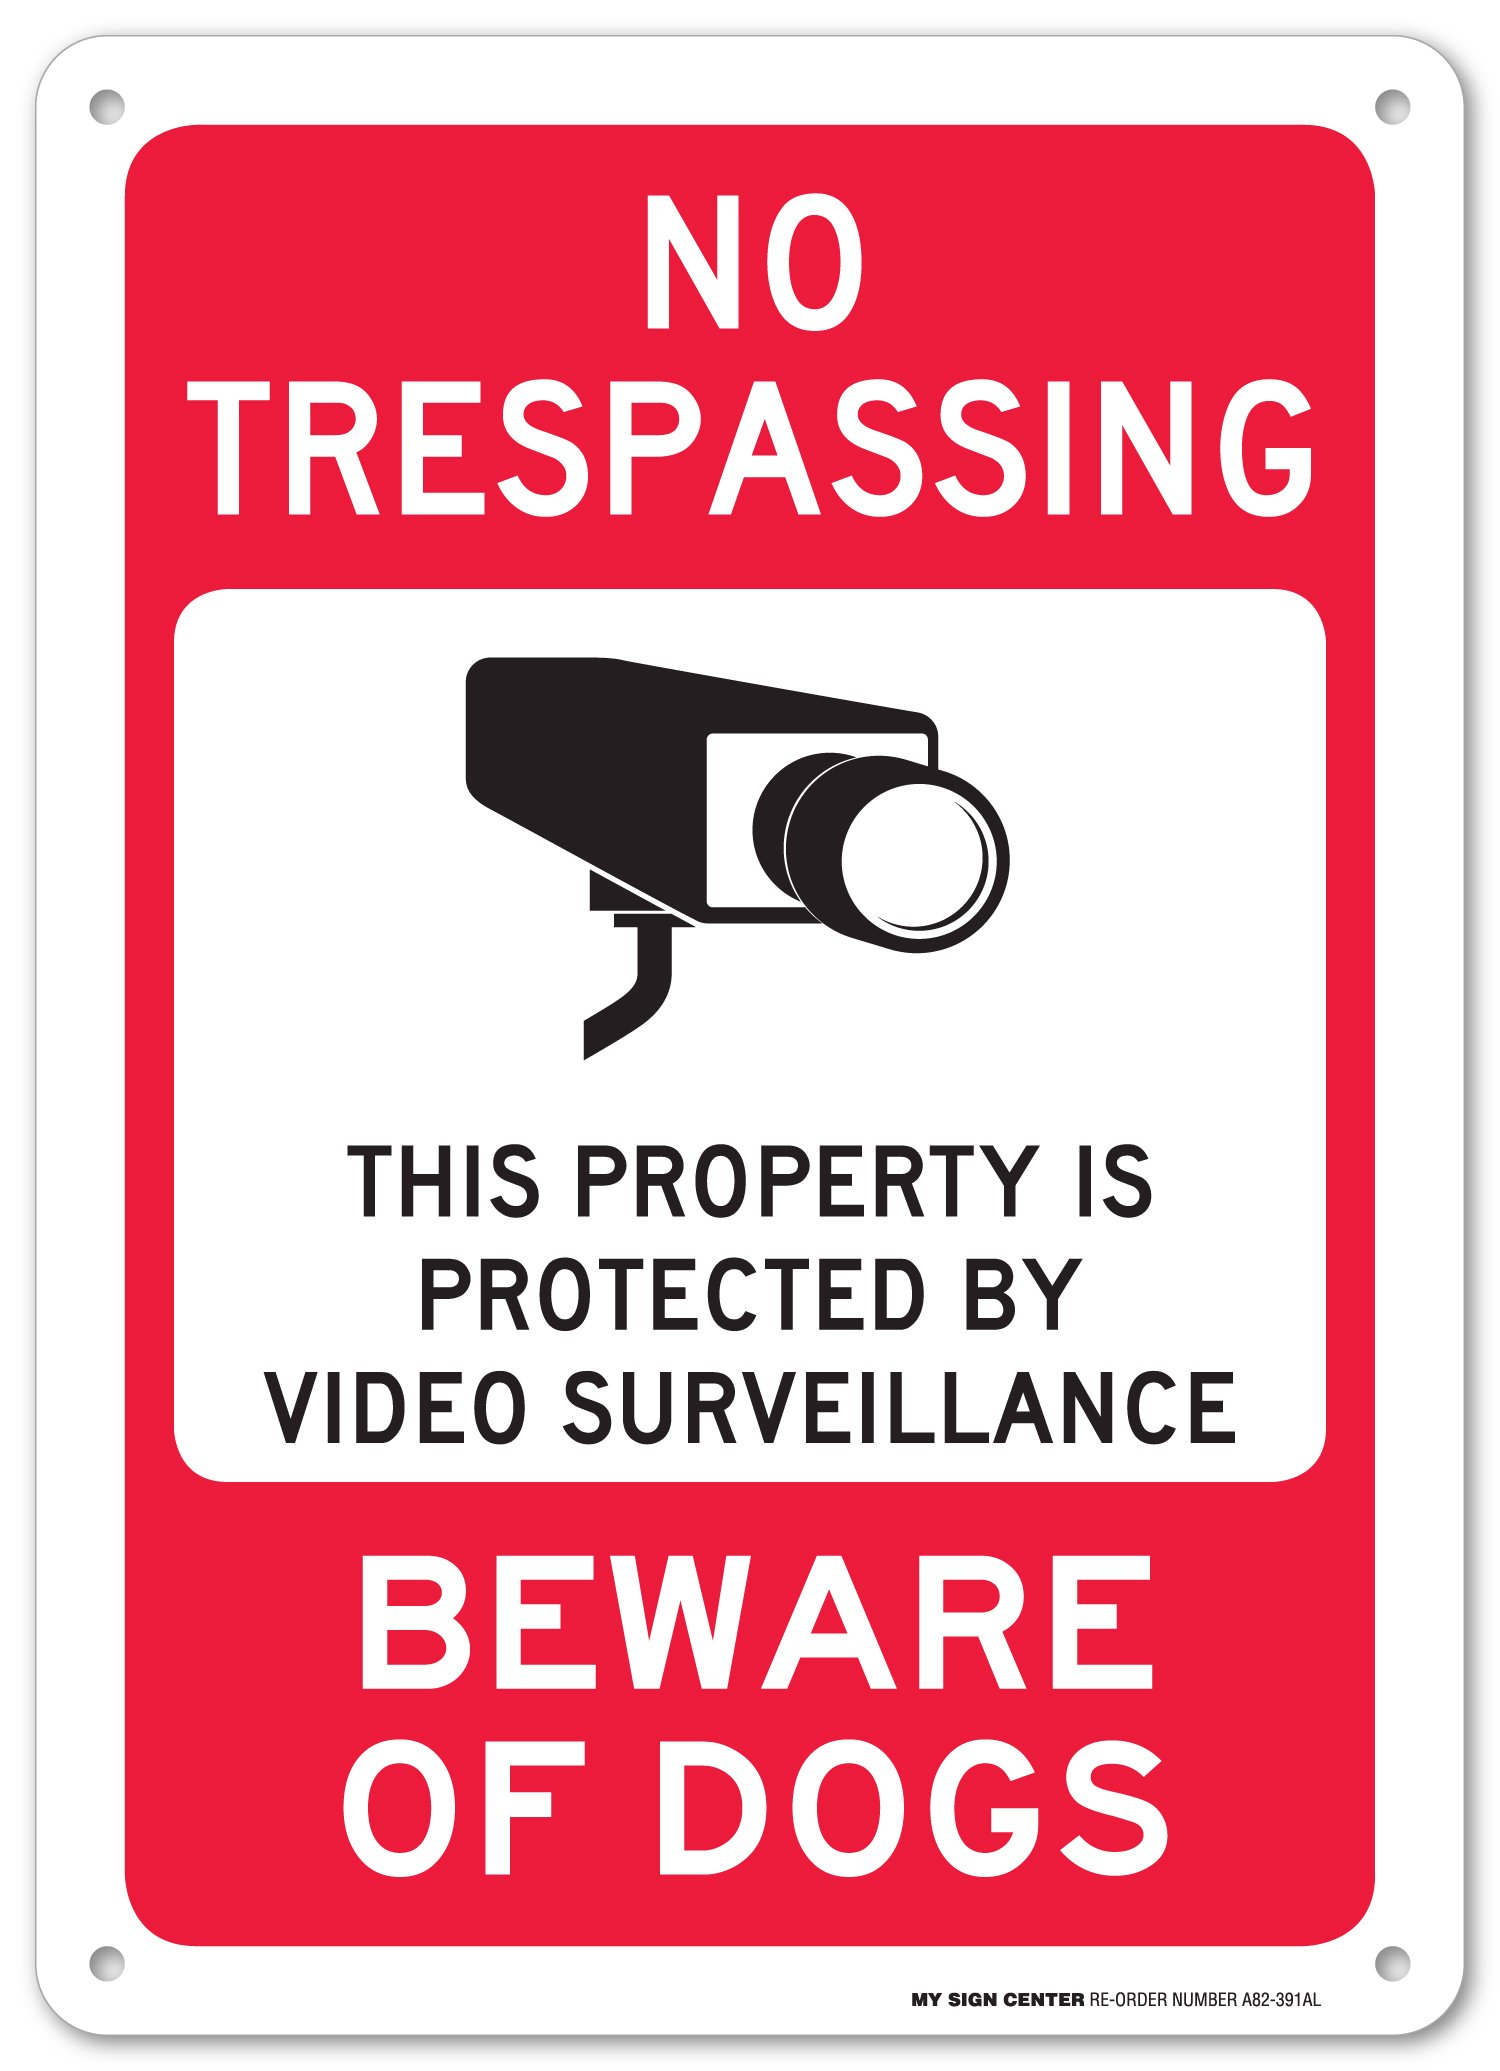 No Trespassing This Property is Protected by Video Surveillance Beware of Dogs Sign - 14''x10'' .040 Rust Free Aluminum - Made in USA - UV Protected and Weatherproof - A82-391AL